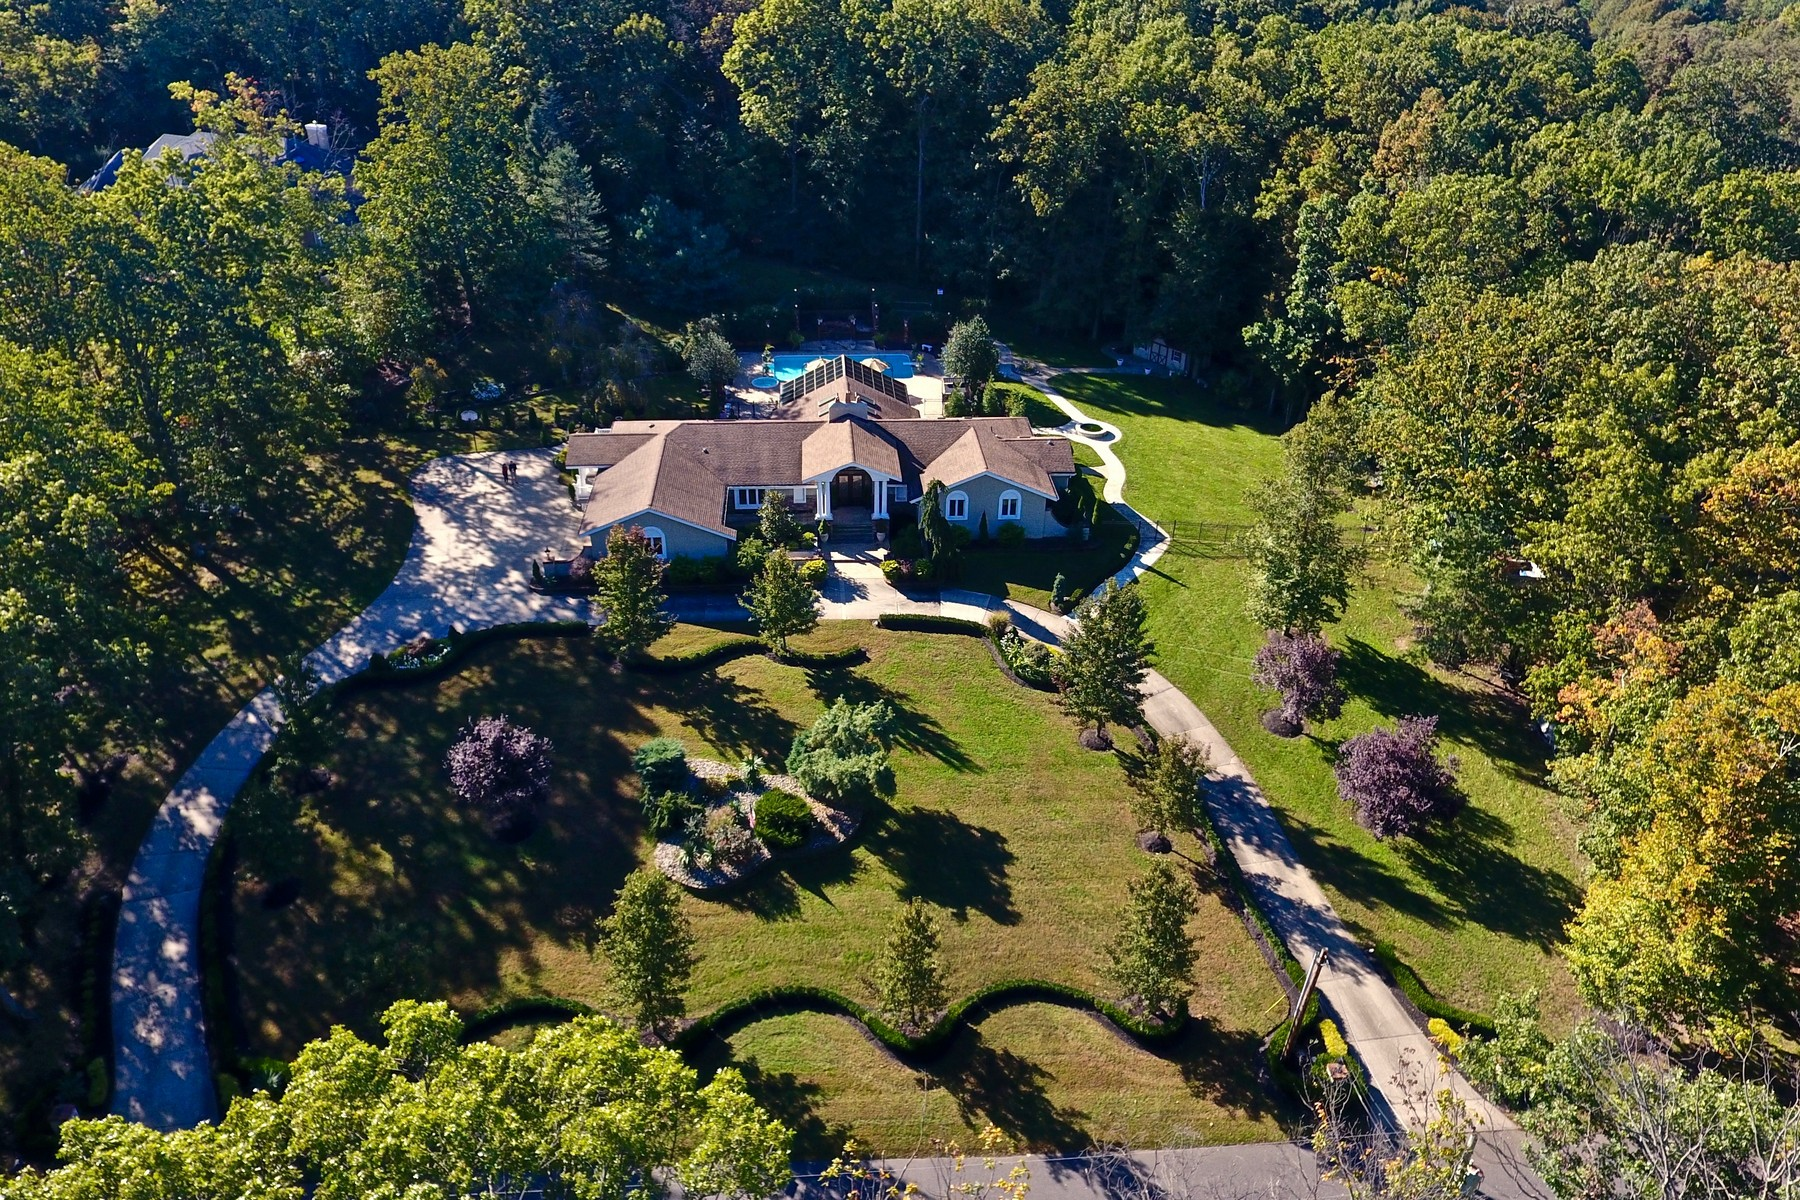 Casa Unifamiliar por un Venta en Extraordinary Expanded Ranch 131 Stone Hill Road Colts Neck, Nueva Jersey, 07722 Estados Unidos